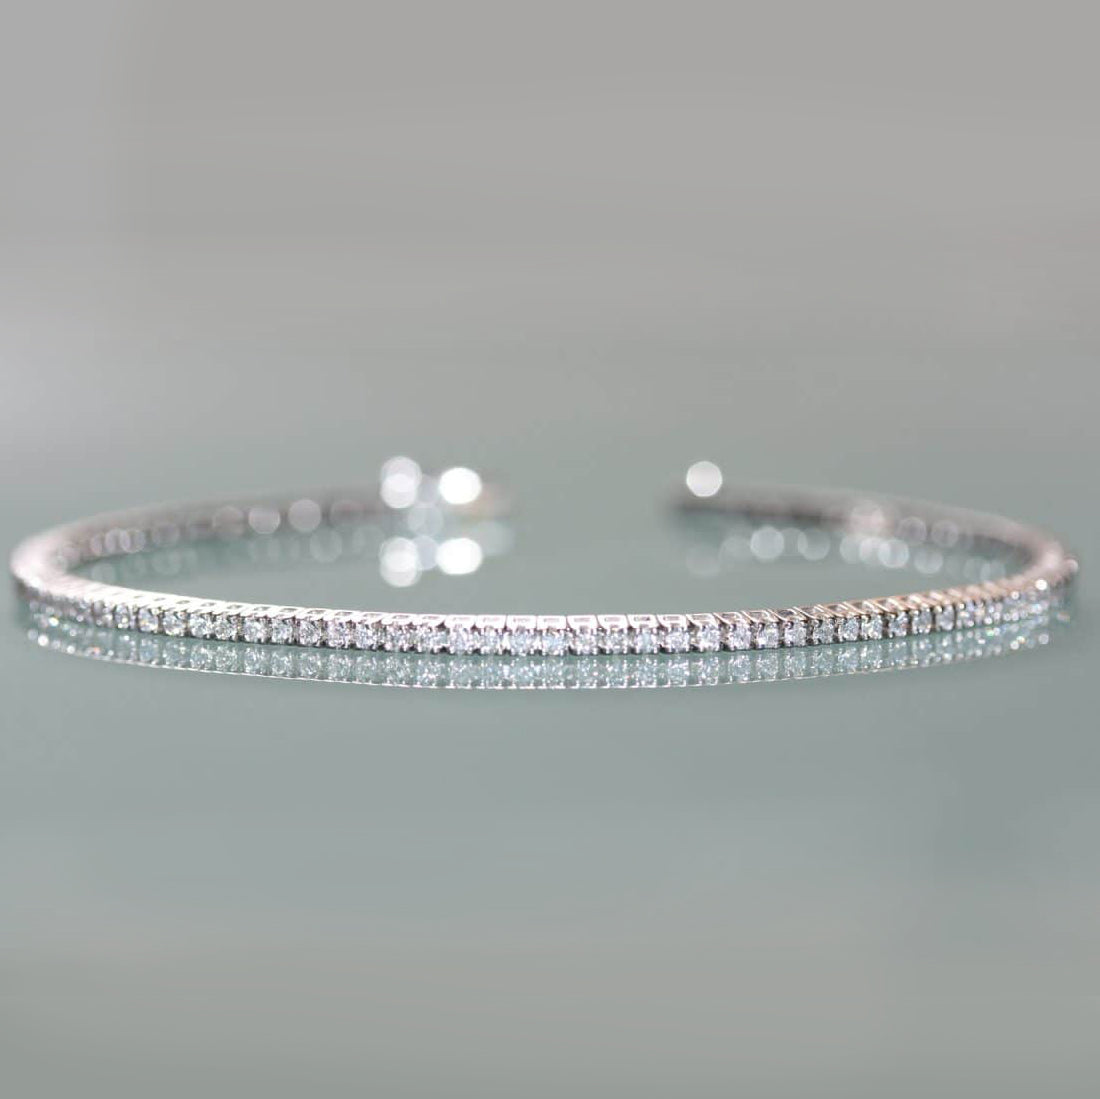 Alternative view of the white gold diamond bracelet.